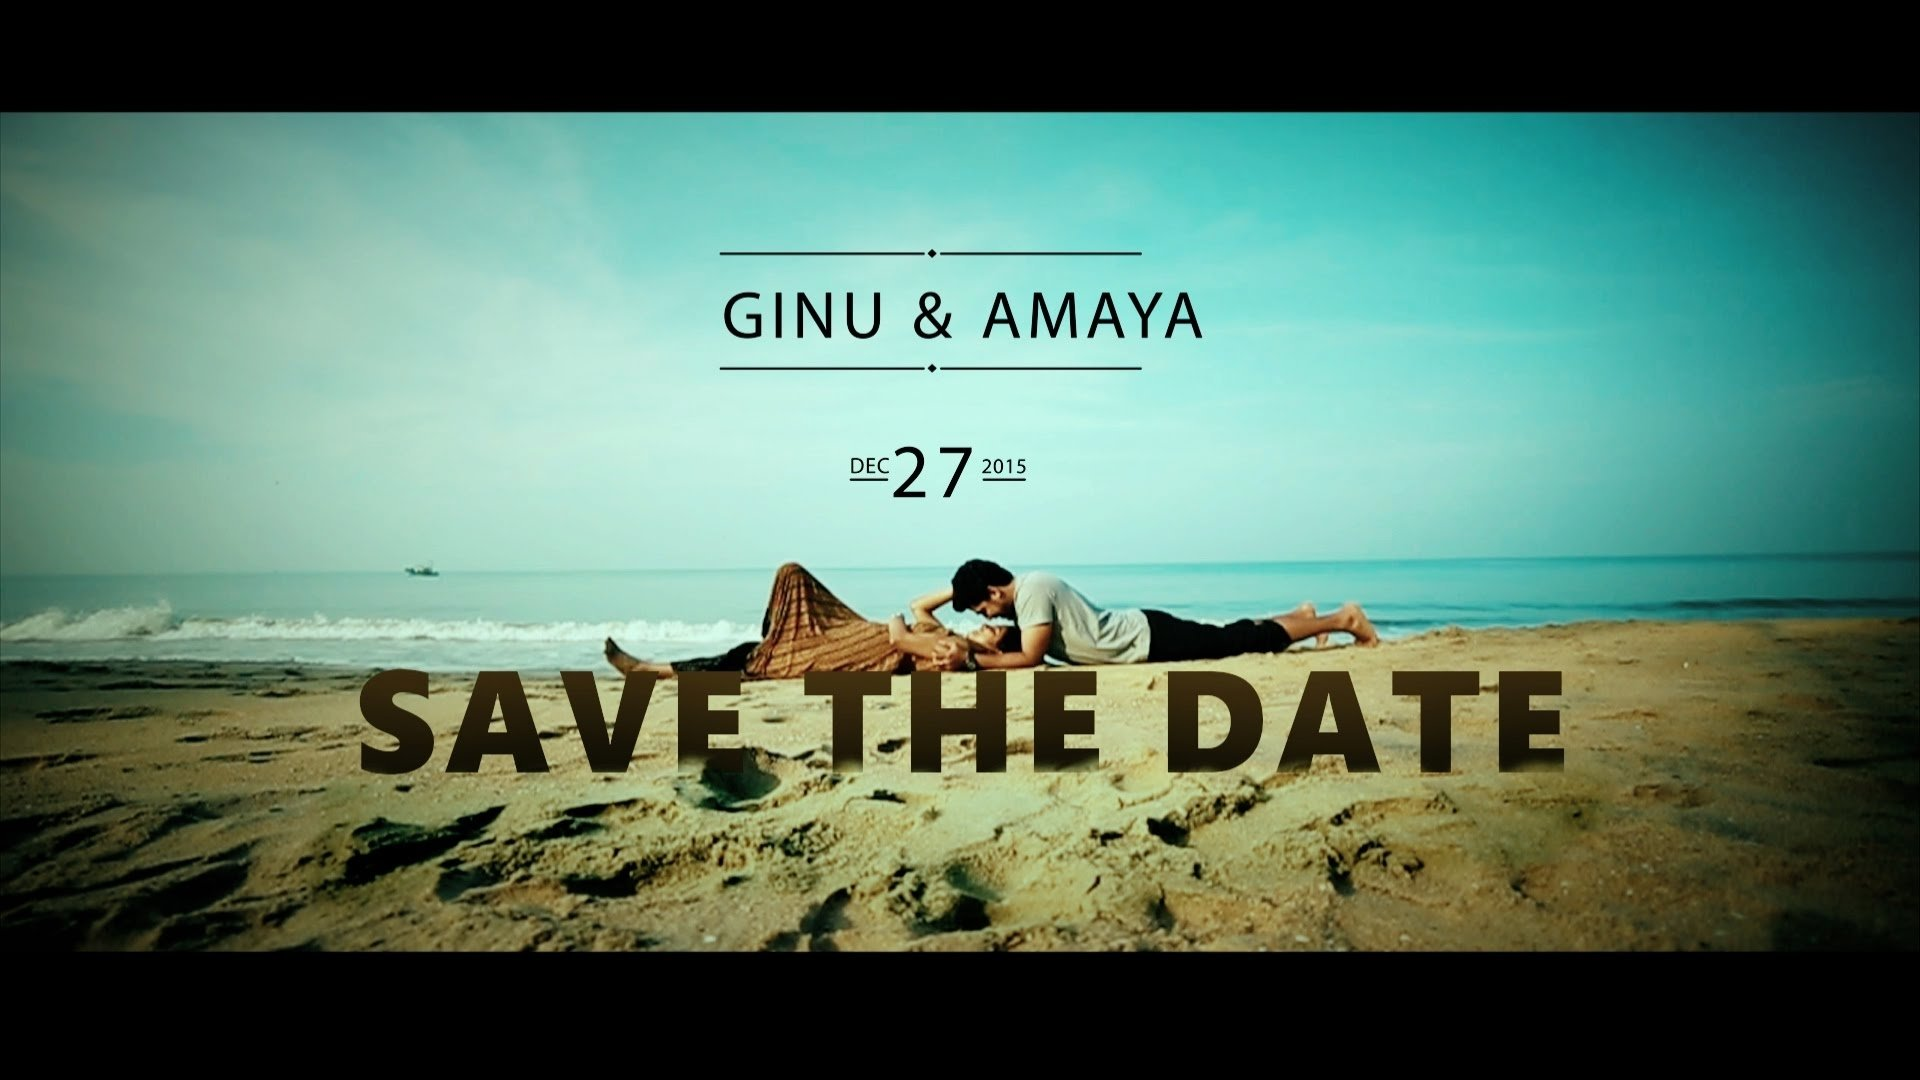 10 Unique Save The Date Video Ideas ginuamaya wedding save the date video createdstudio mahal 2021